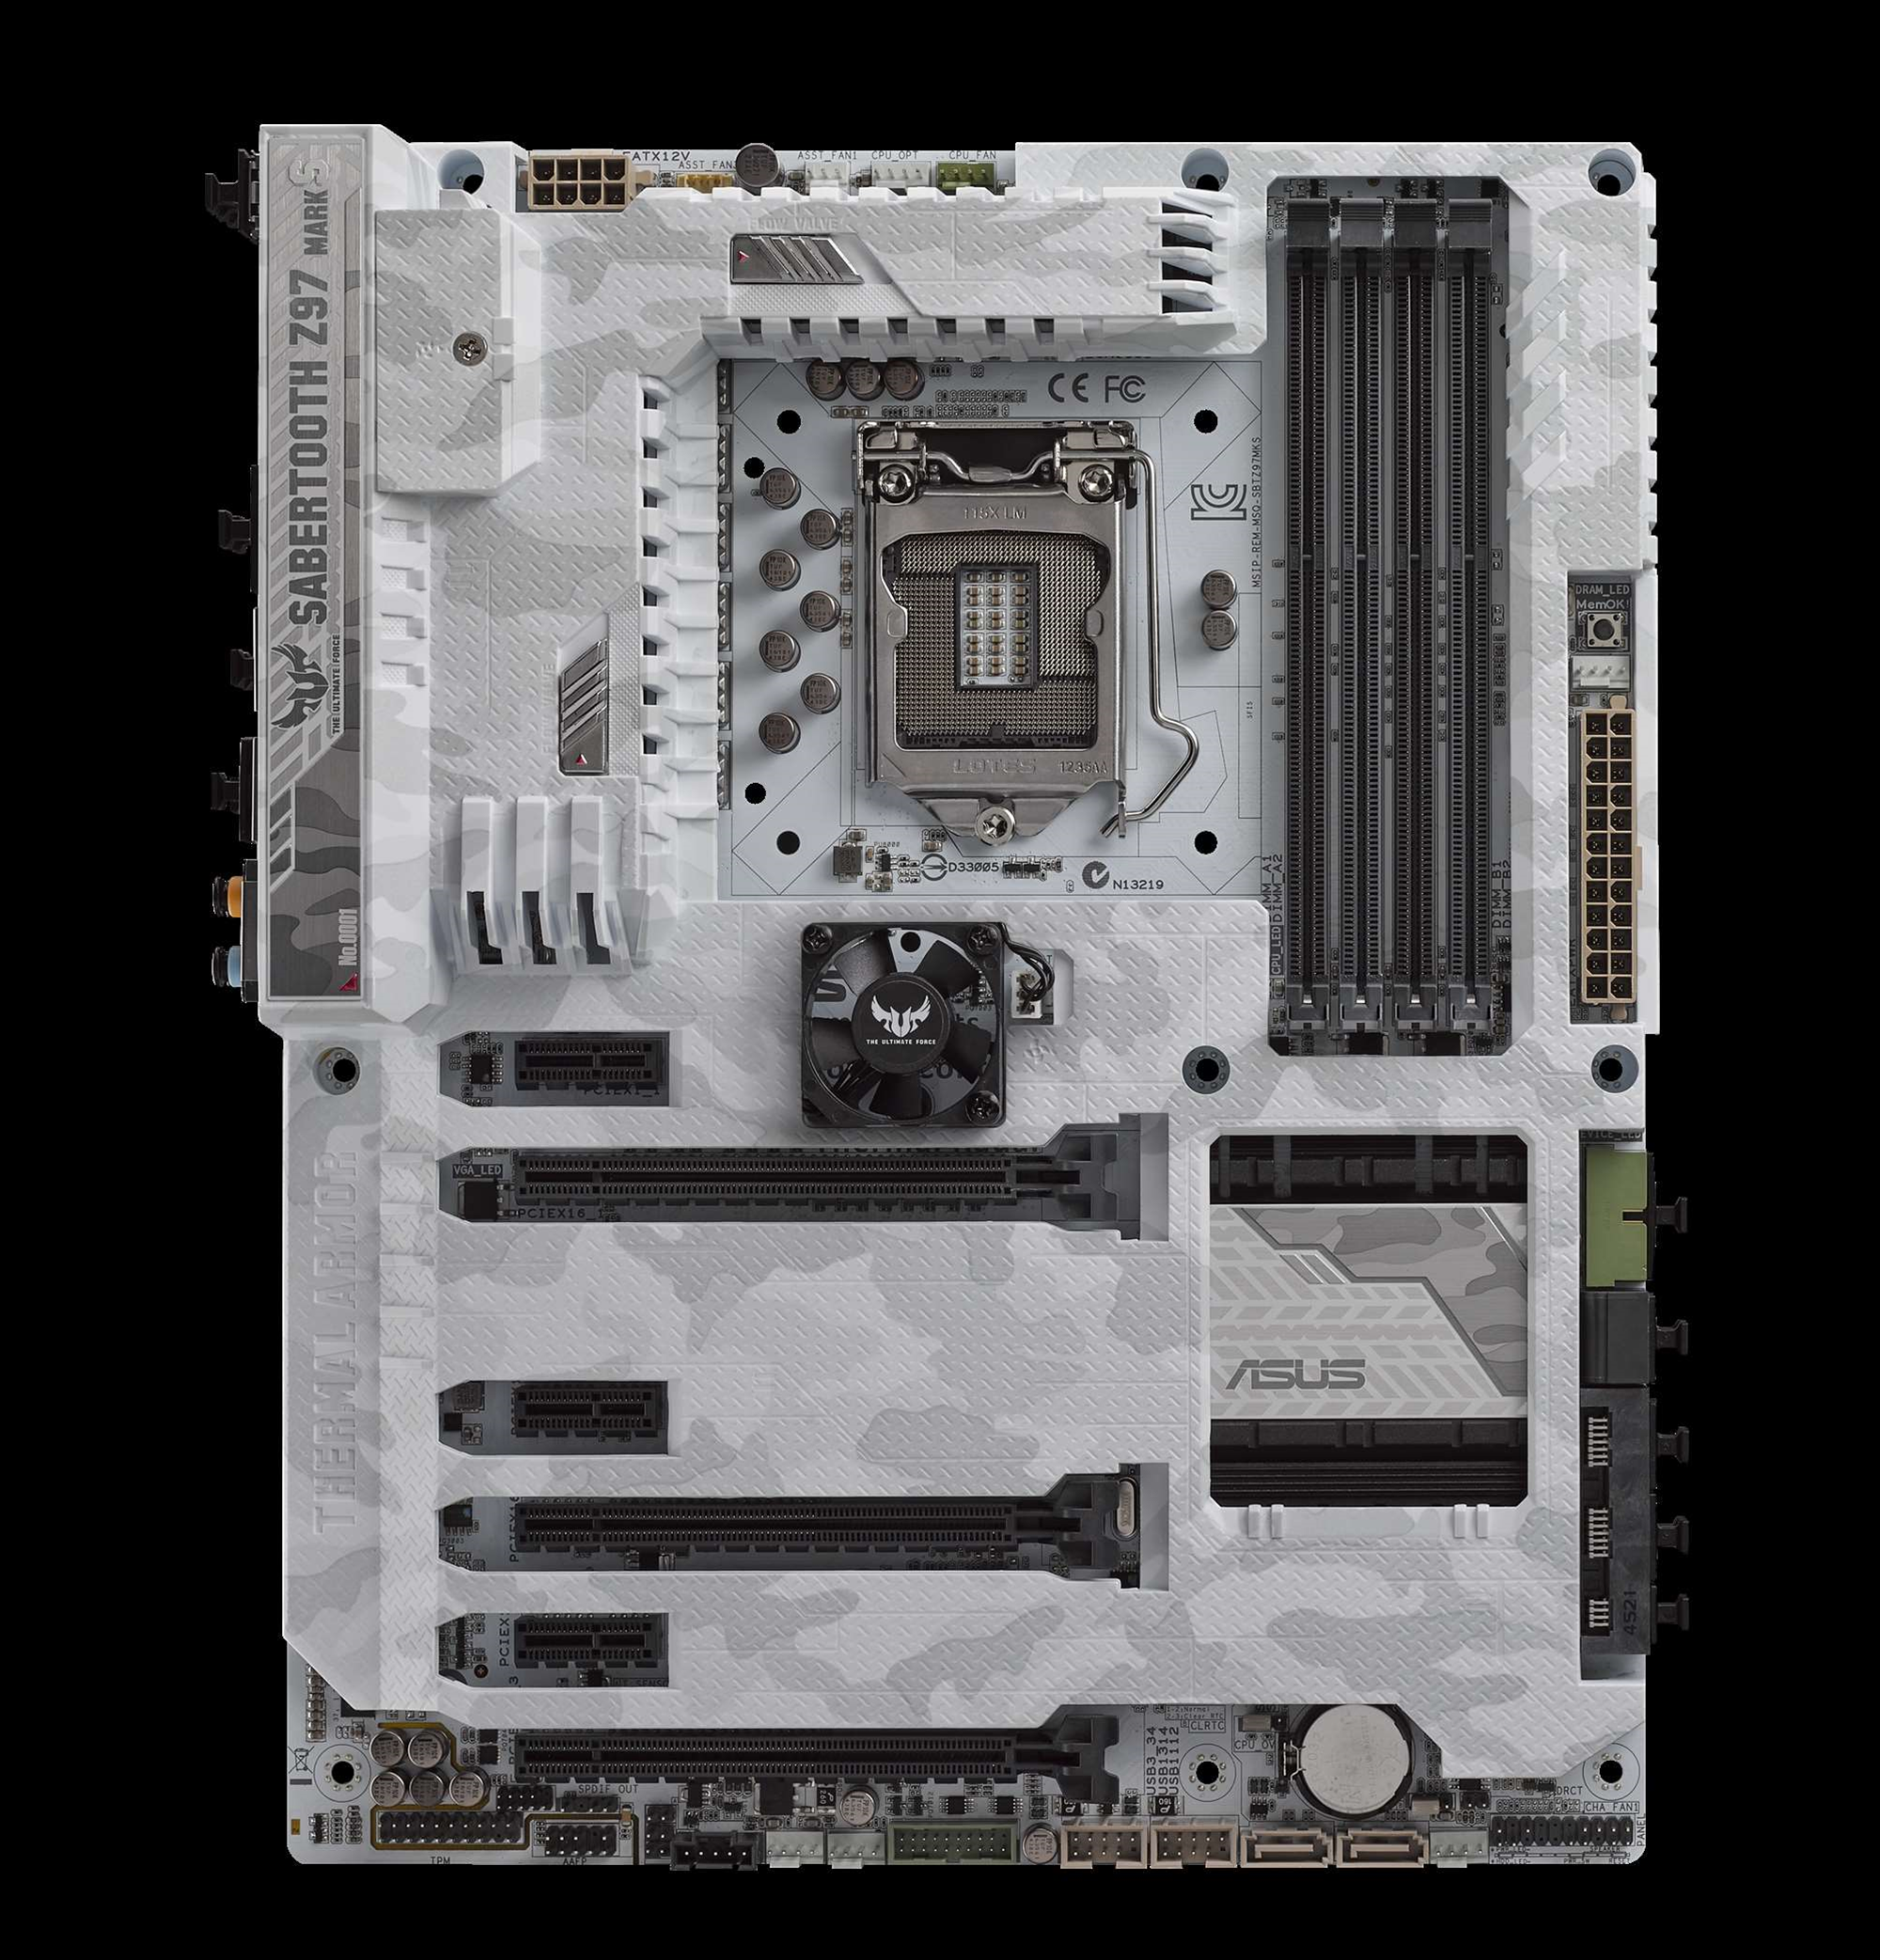 The all-white Asus Sabretooth limited edition